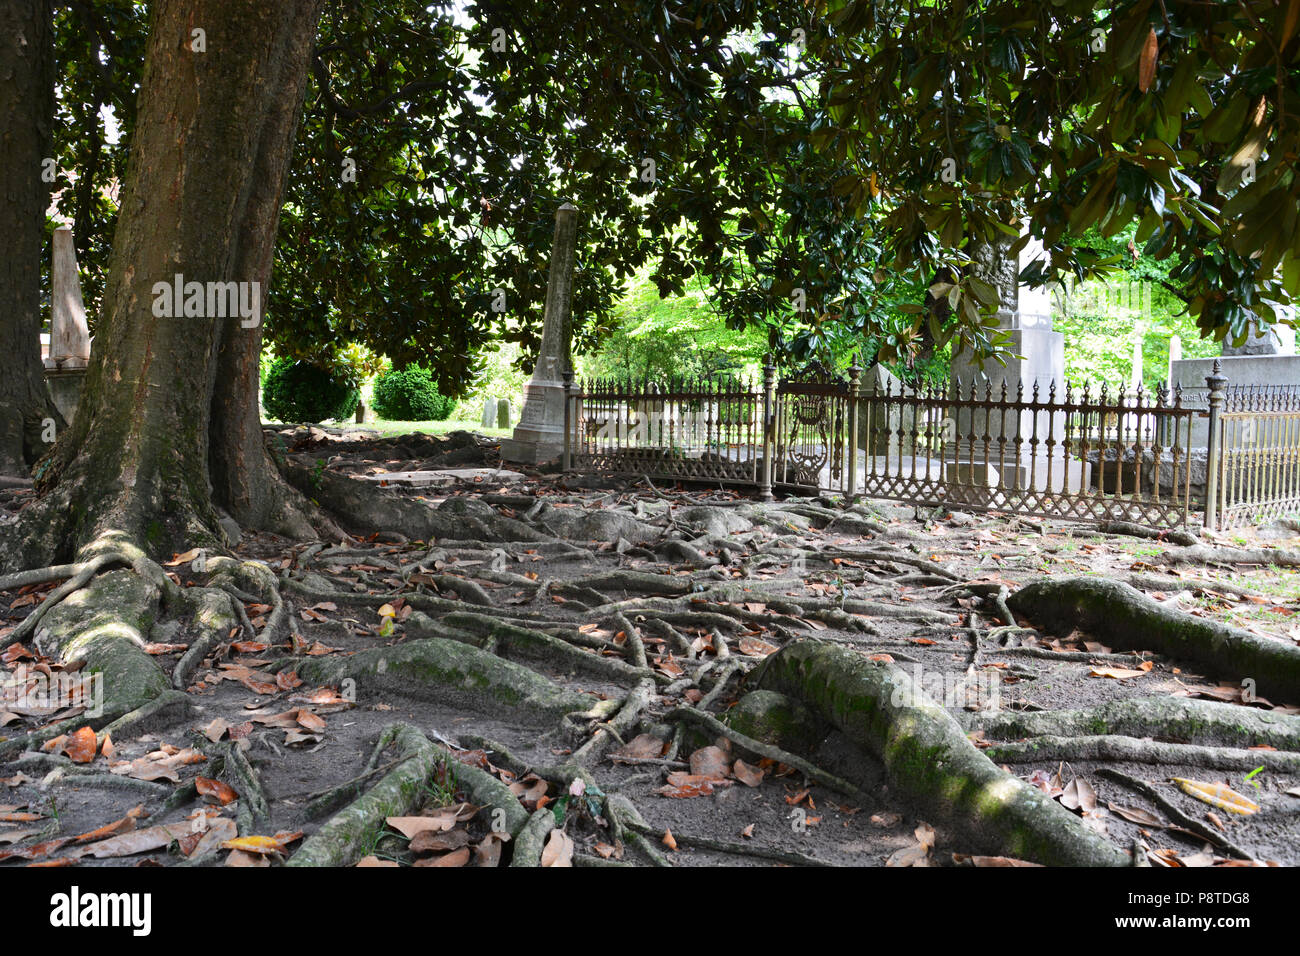 Roots From 100 Year Old Magnolia Trees Carpet The Ground In The